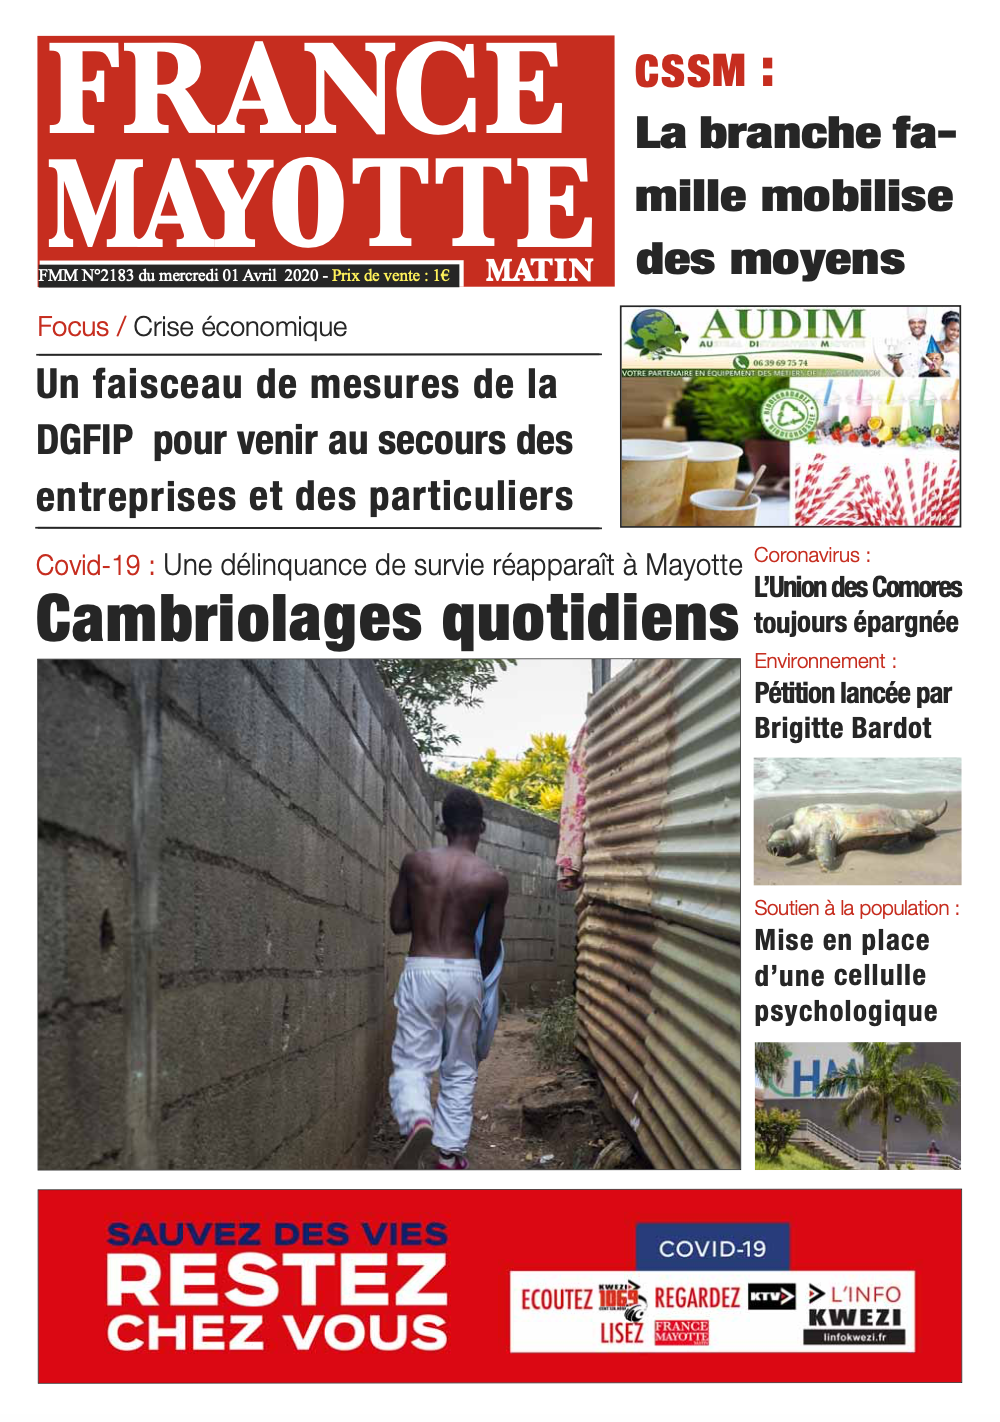 France Mayotte Mercredi 1er avril 2020